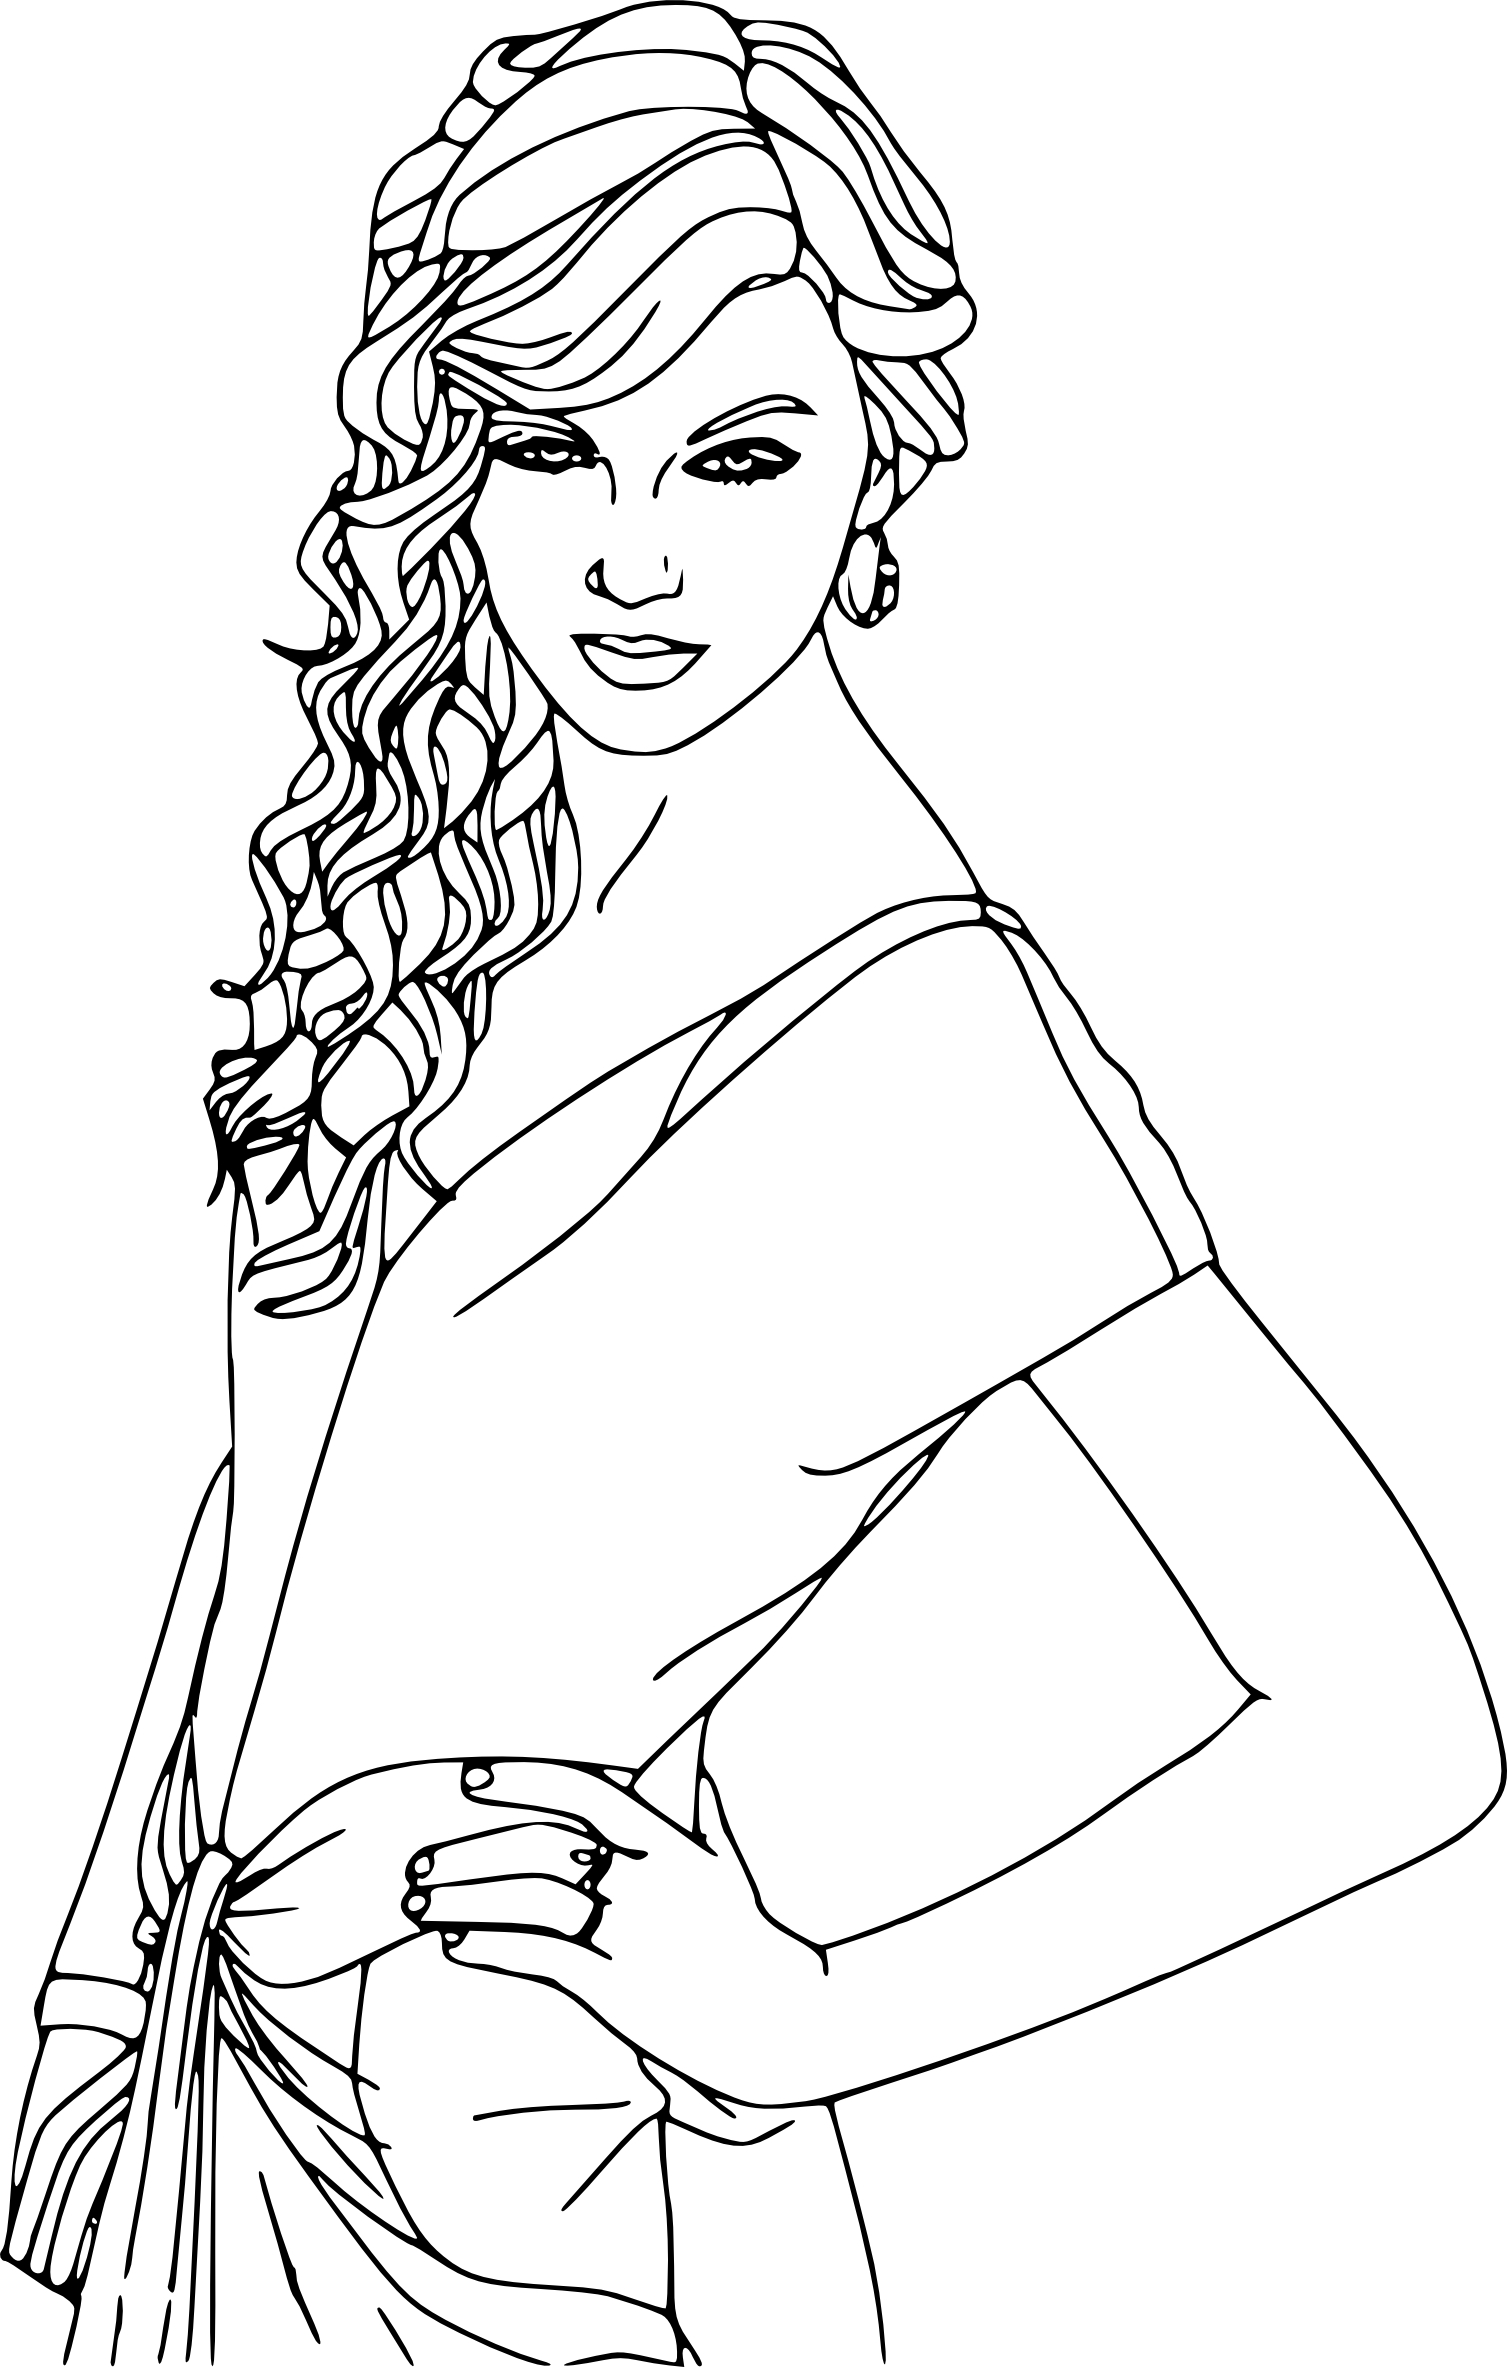 justin bieber coloring pages - coloriage taylor swift